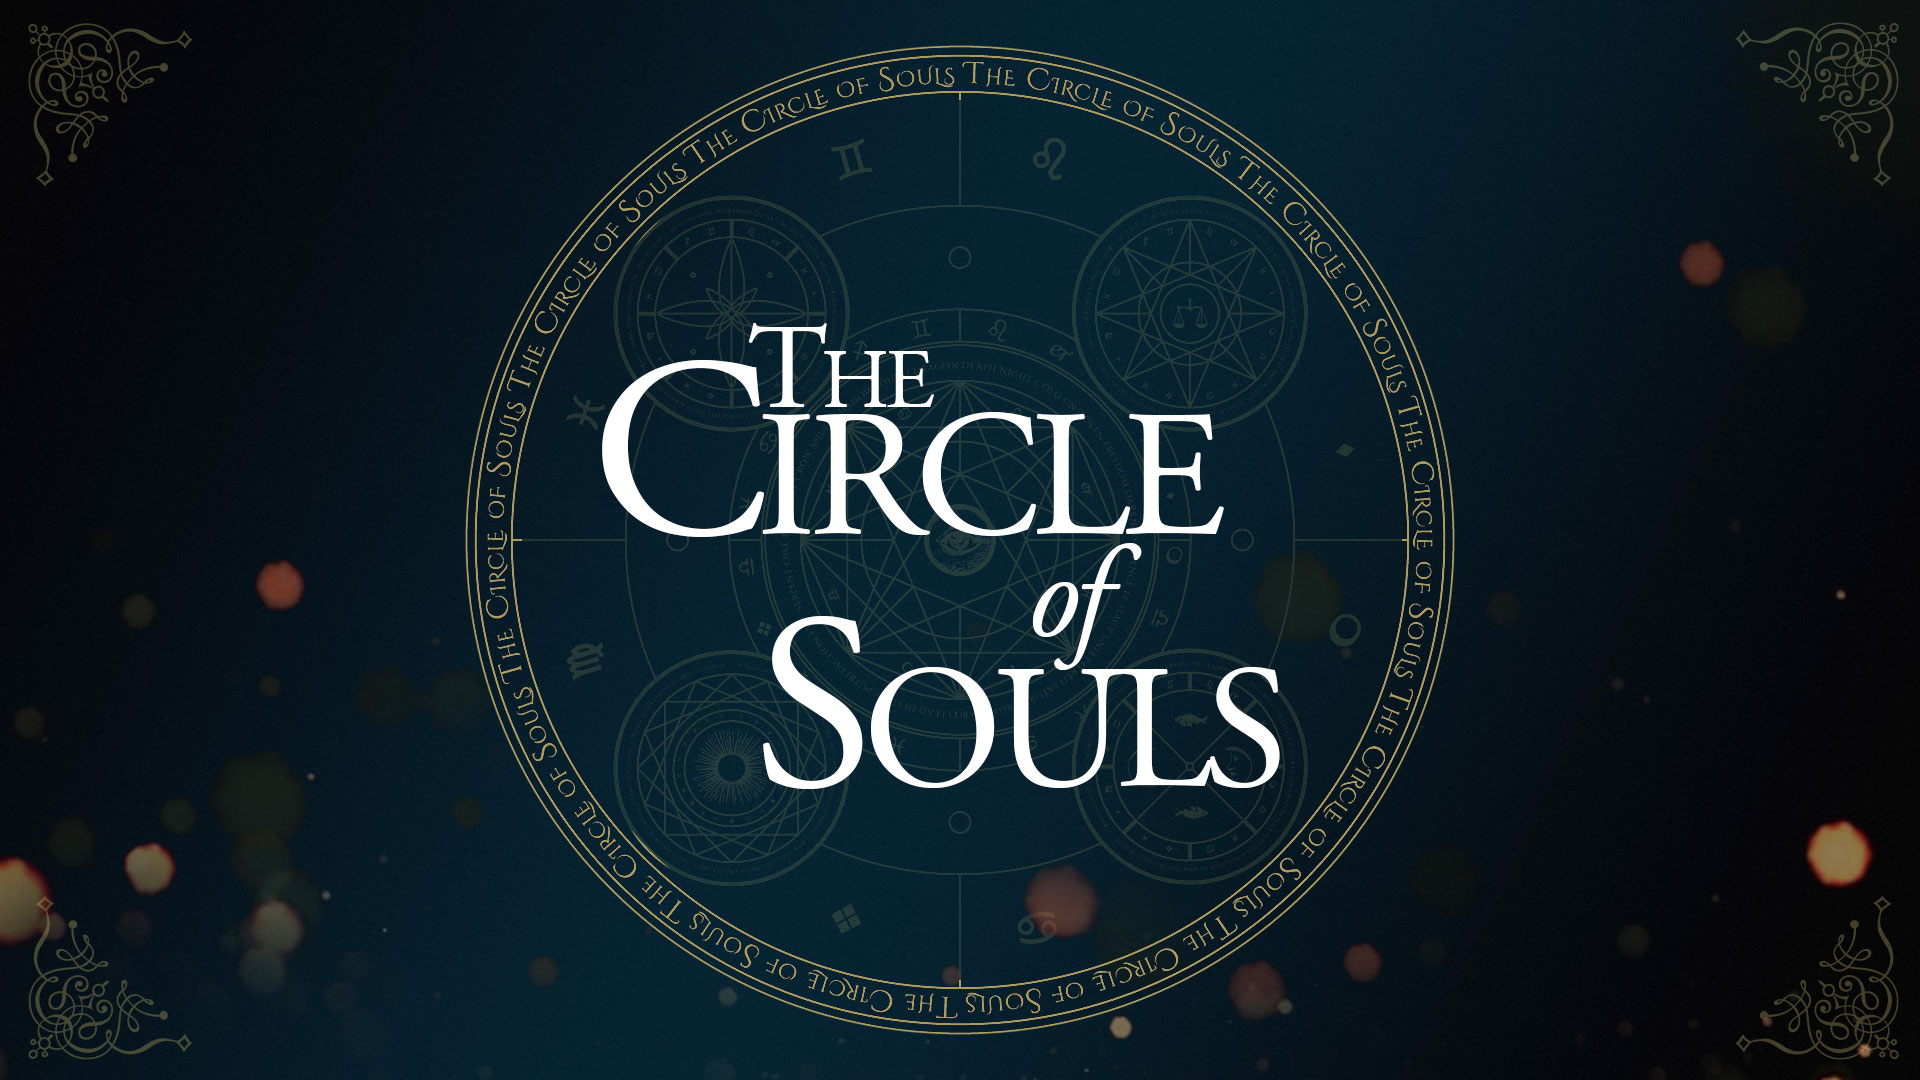 The Circle of Souls series by I.G. Hulme